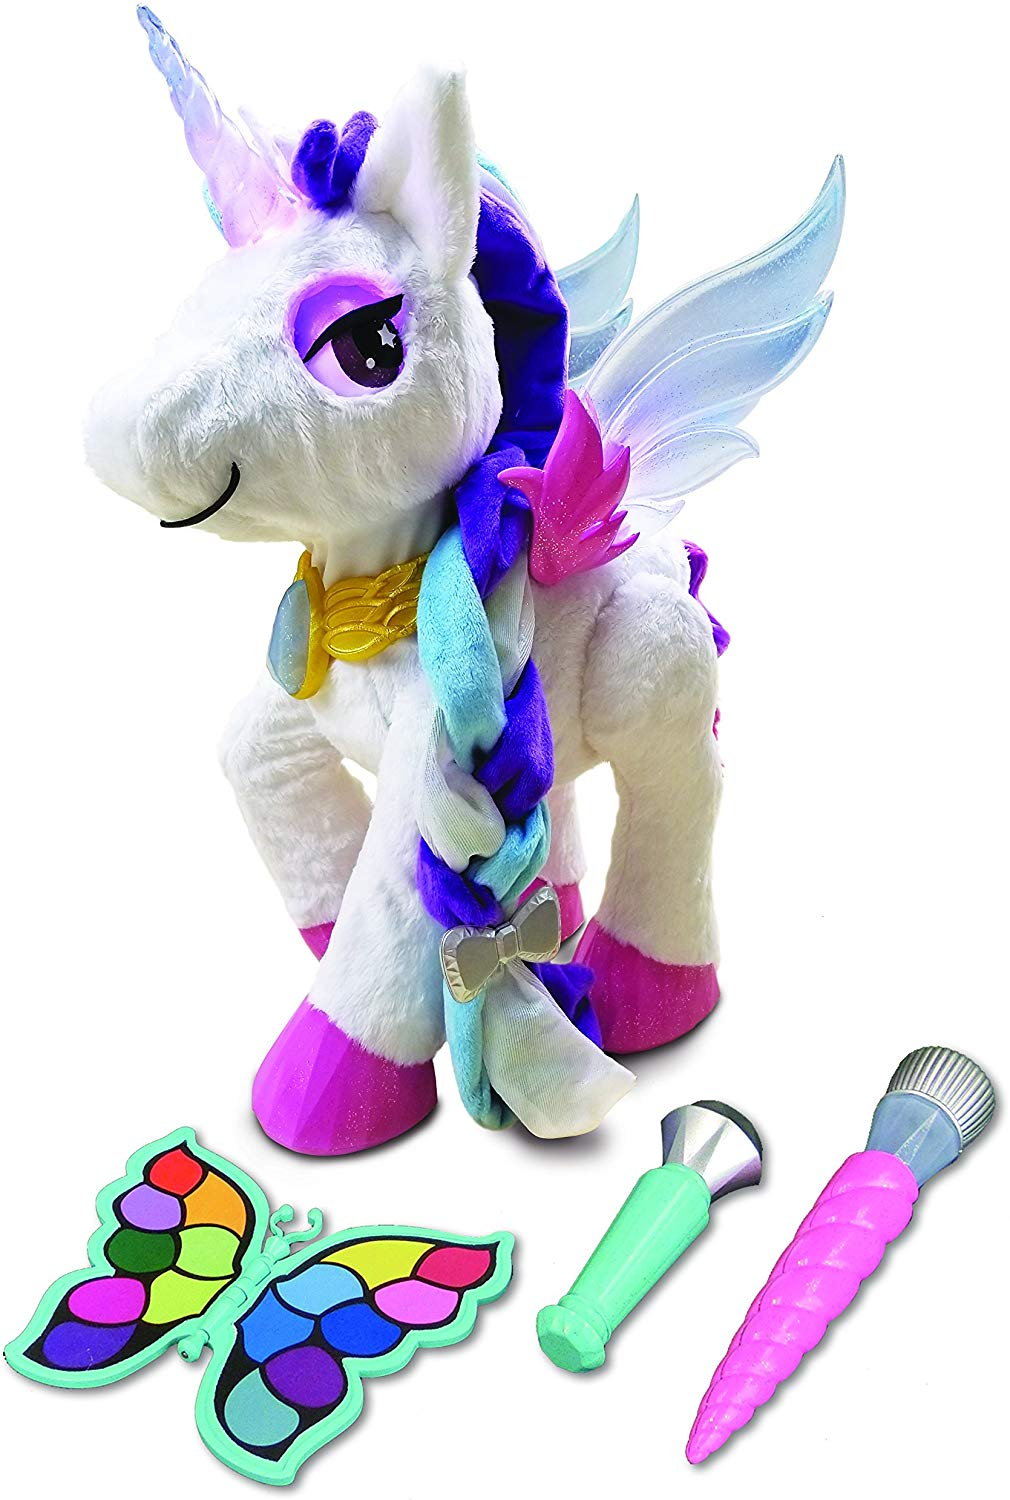 VTech Myla The Magical Make-Up Unicorn Toy with Microphone for Kids